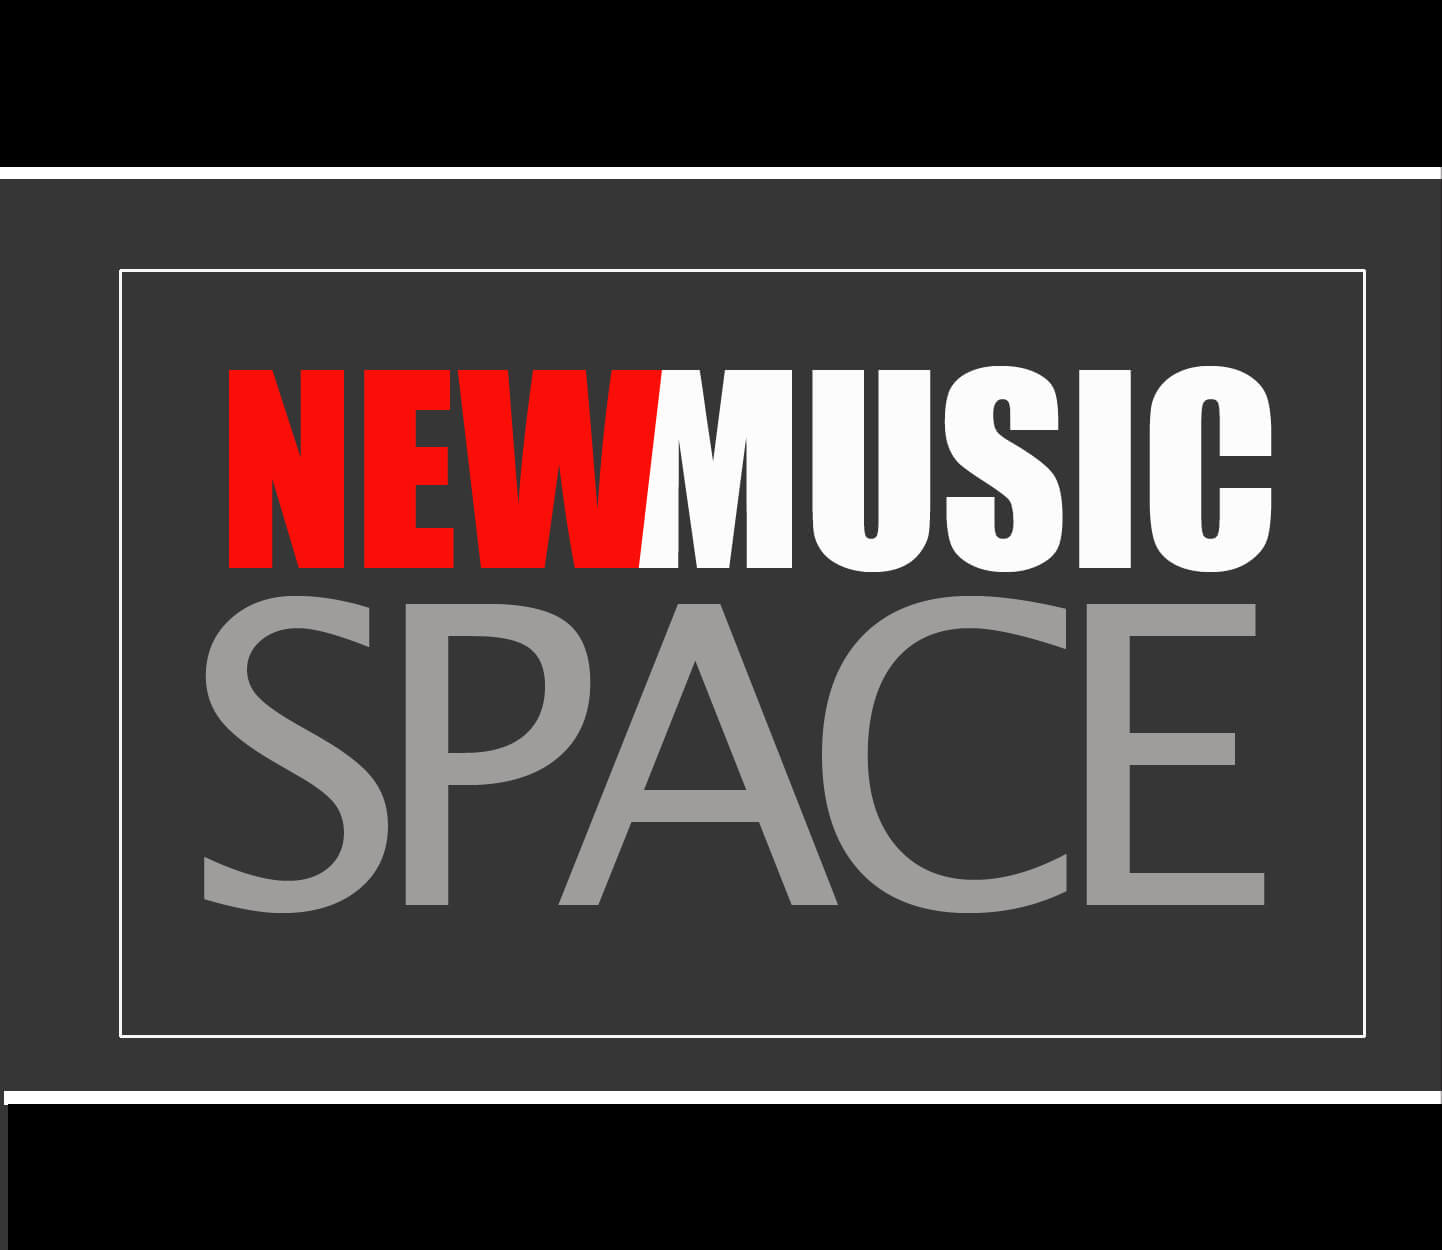 New Music Space, newmusicspace.com